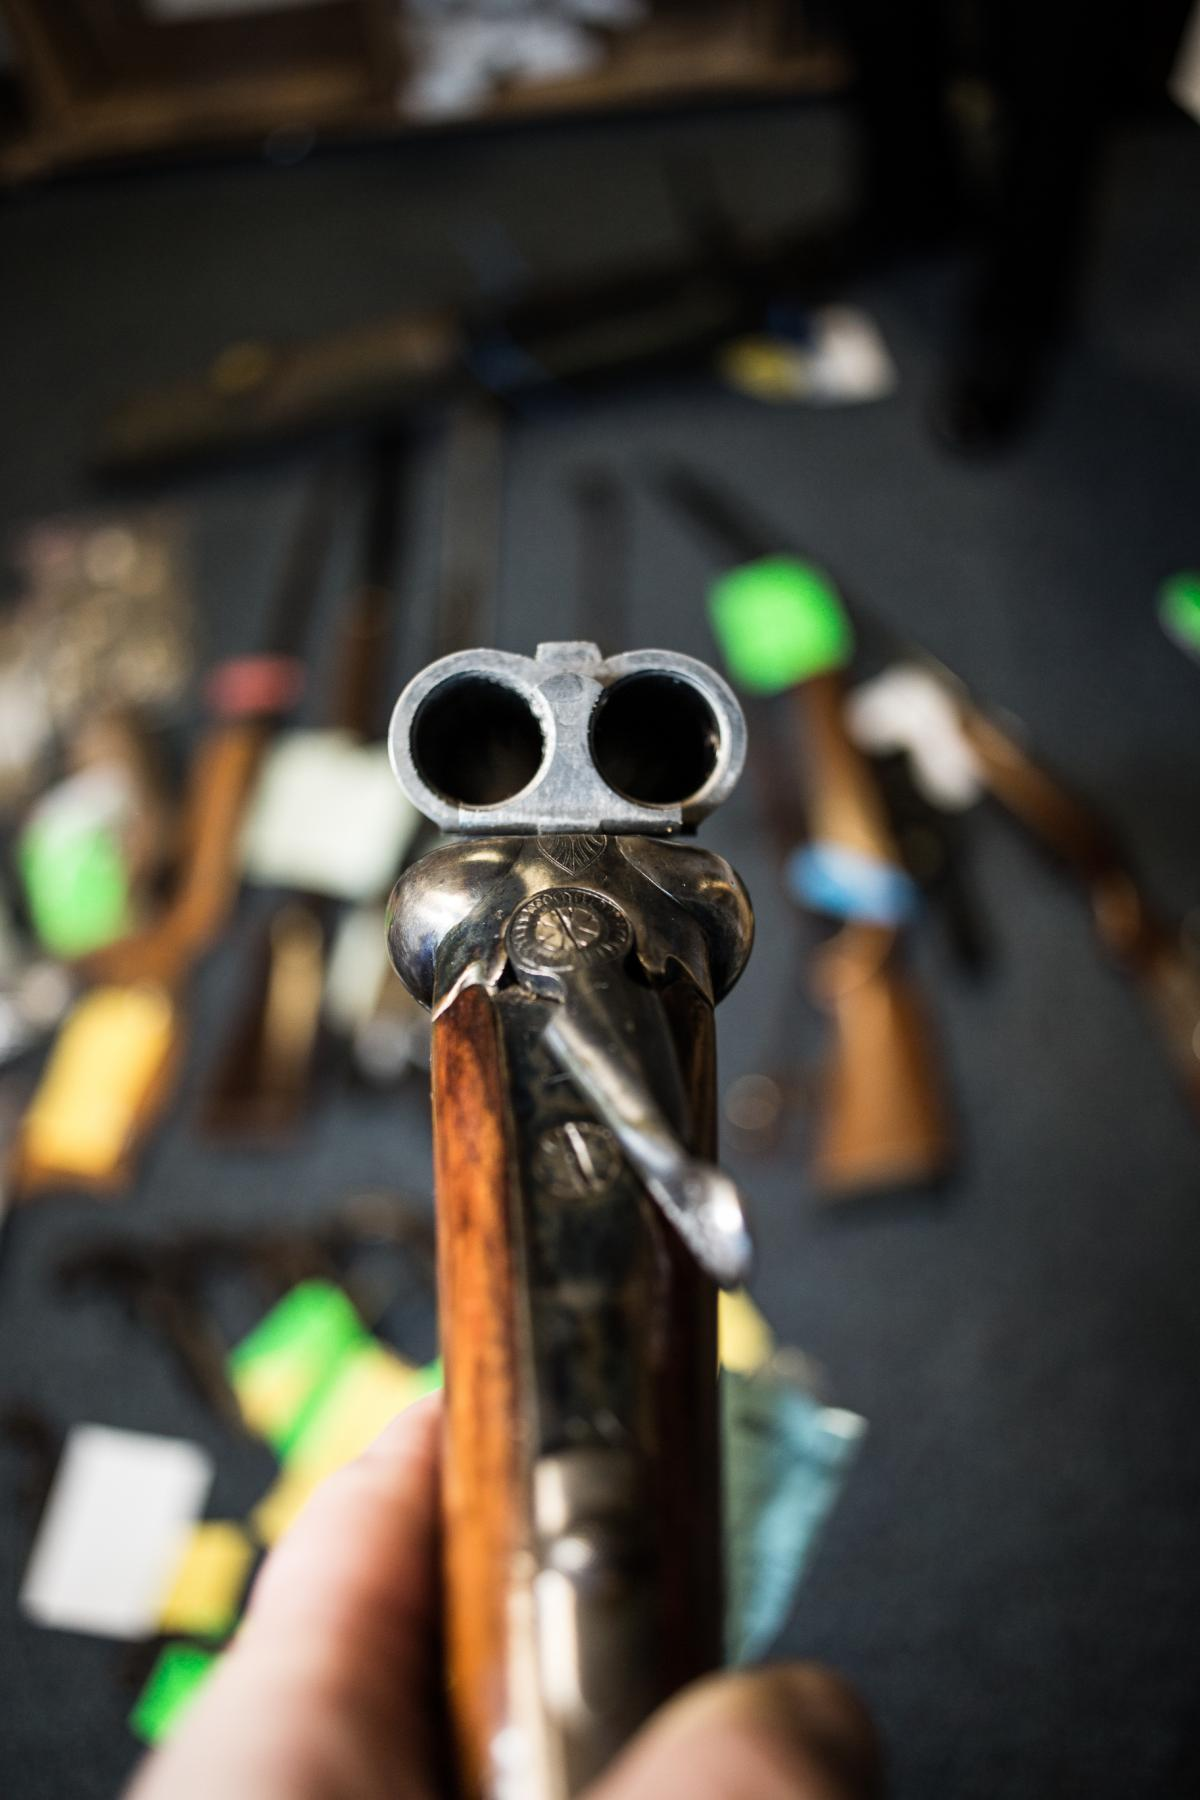 WW1 machine gun among weapons handed in during county